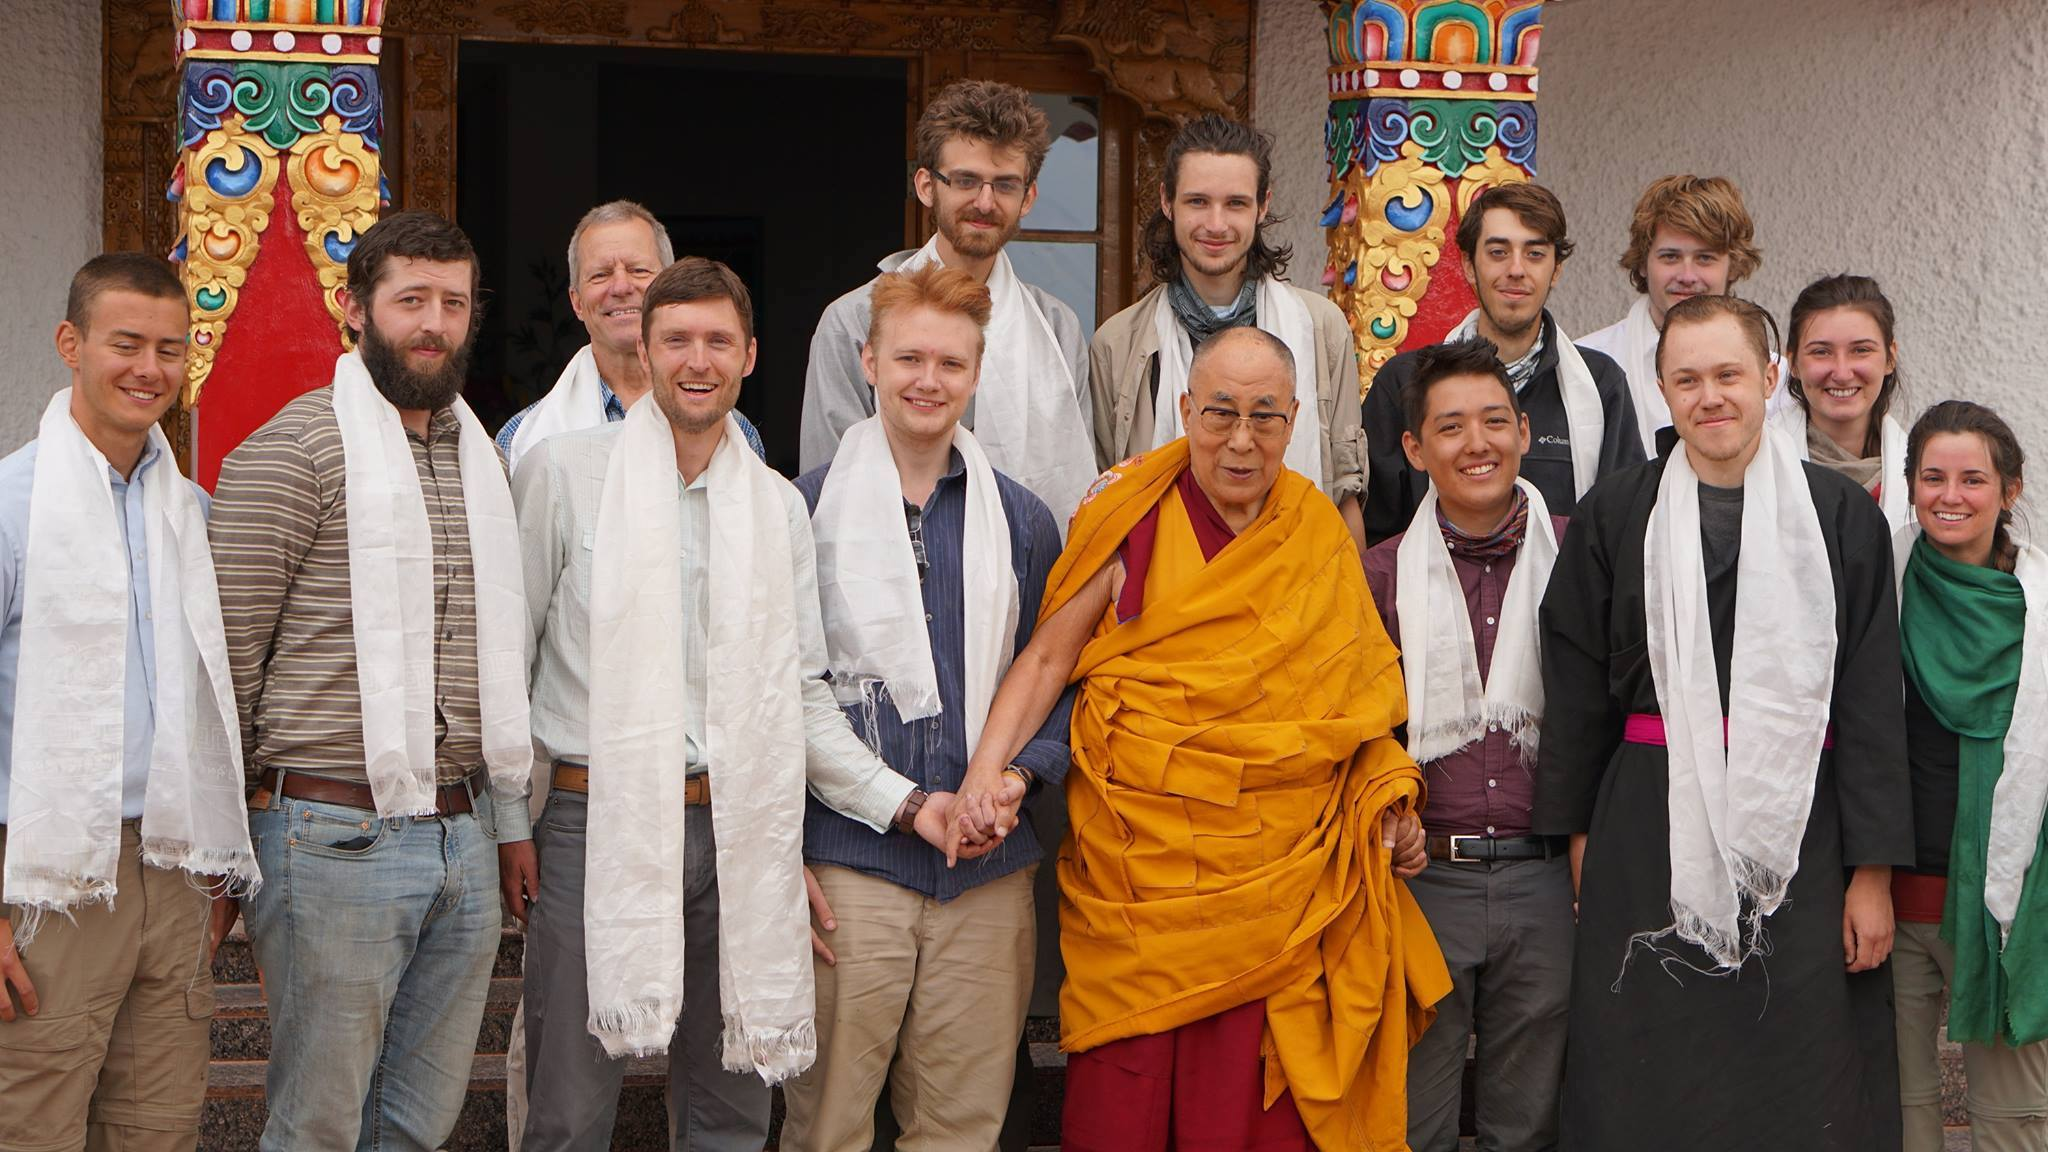 Institute for Village Studies students with the Dalai Lama in 2017